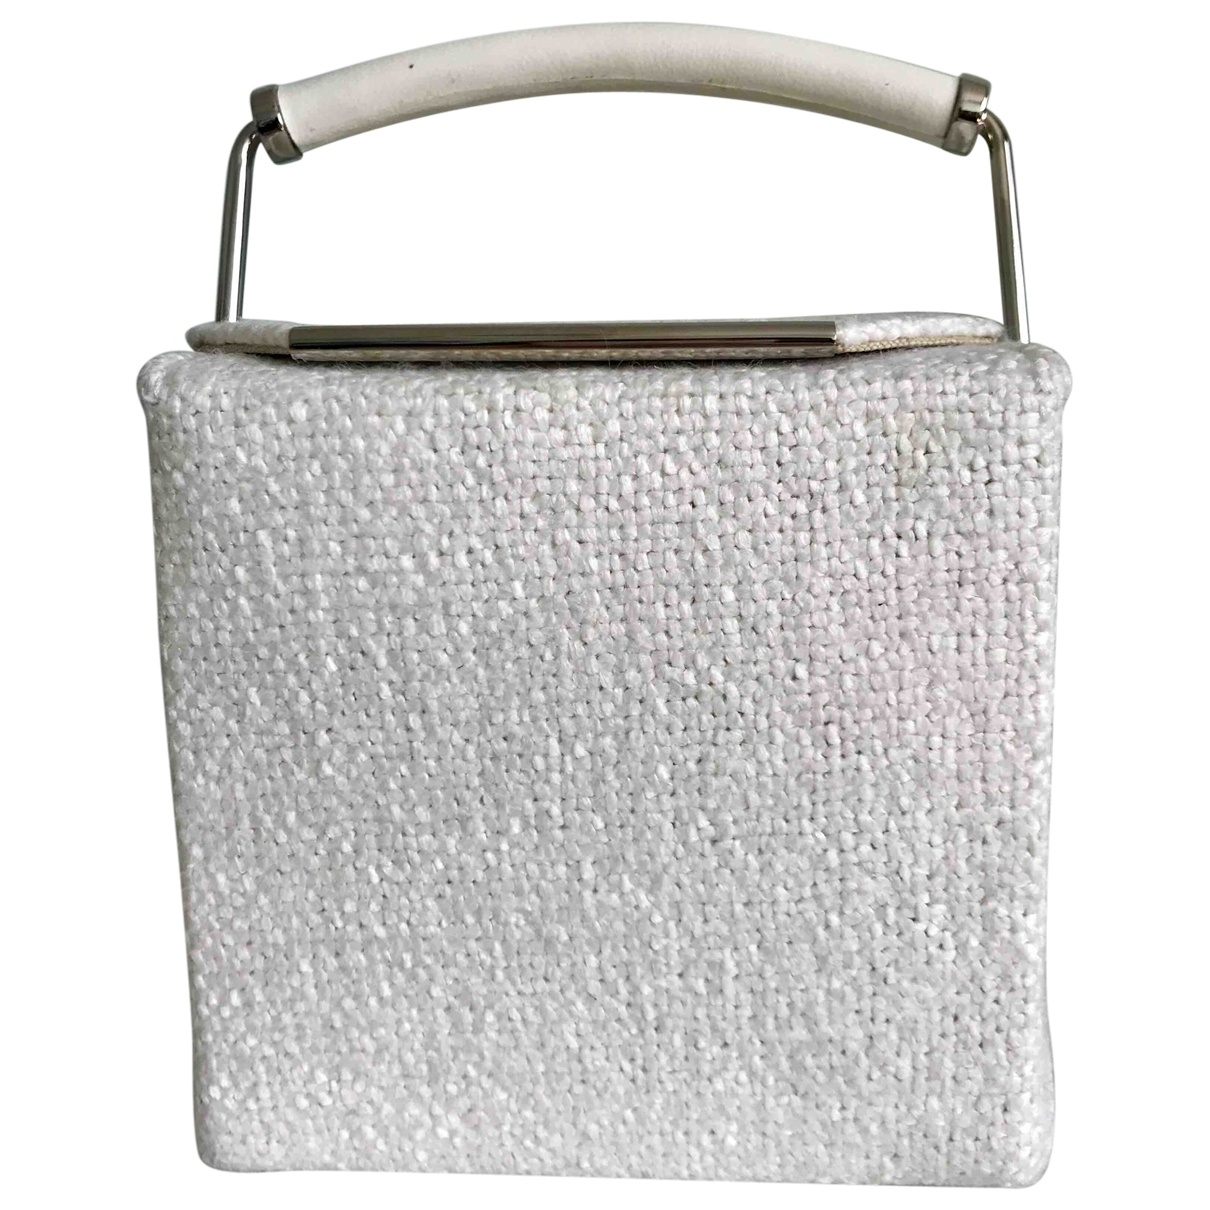 Ermanno Scervino \N White Cloth Clutch bag for Women \N